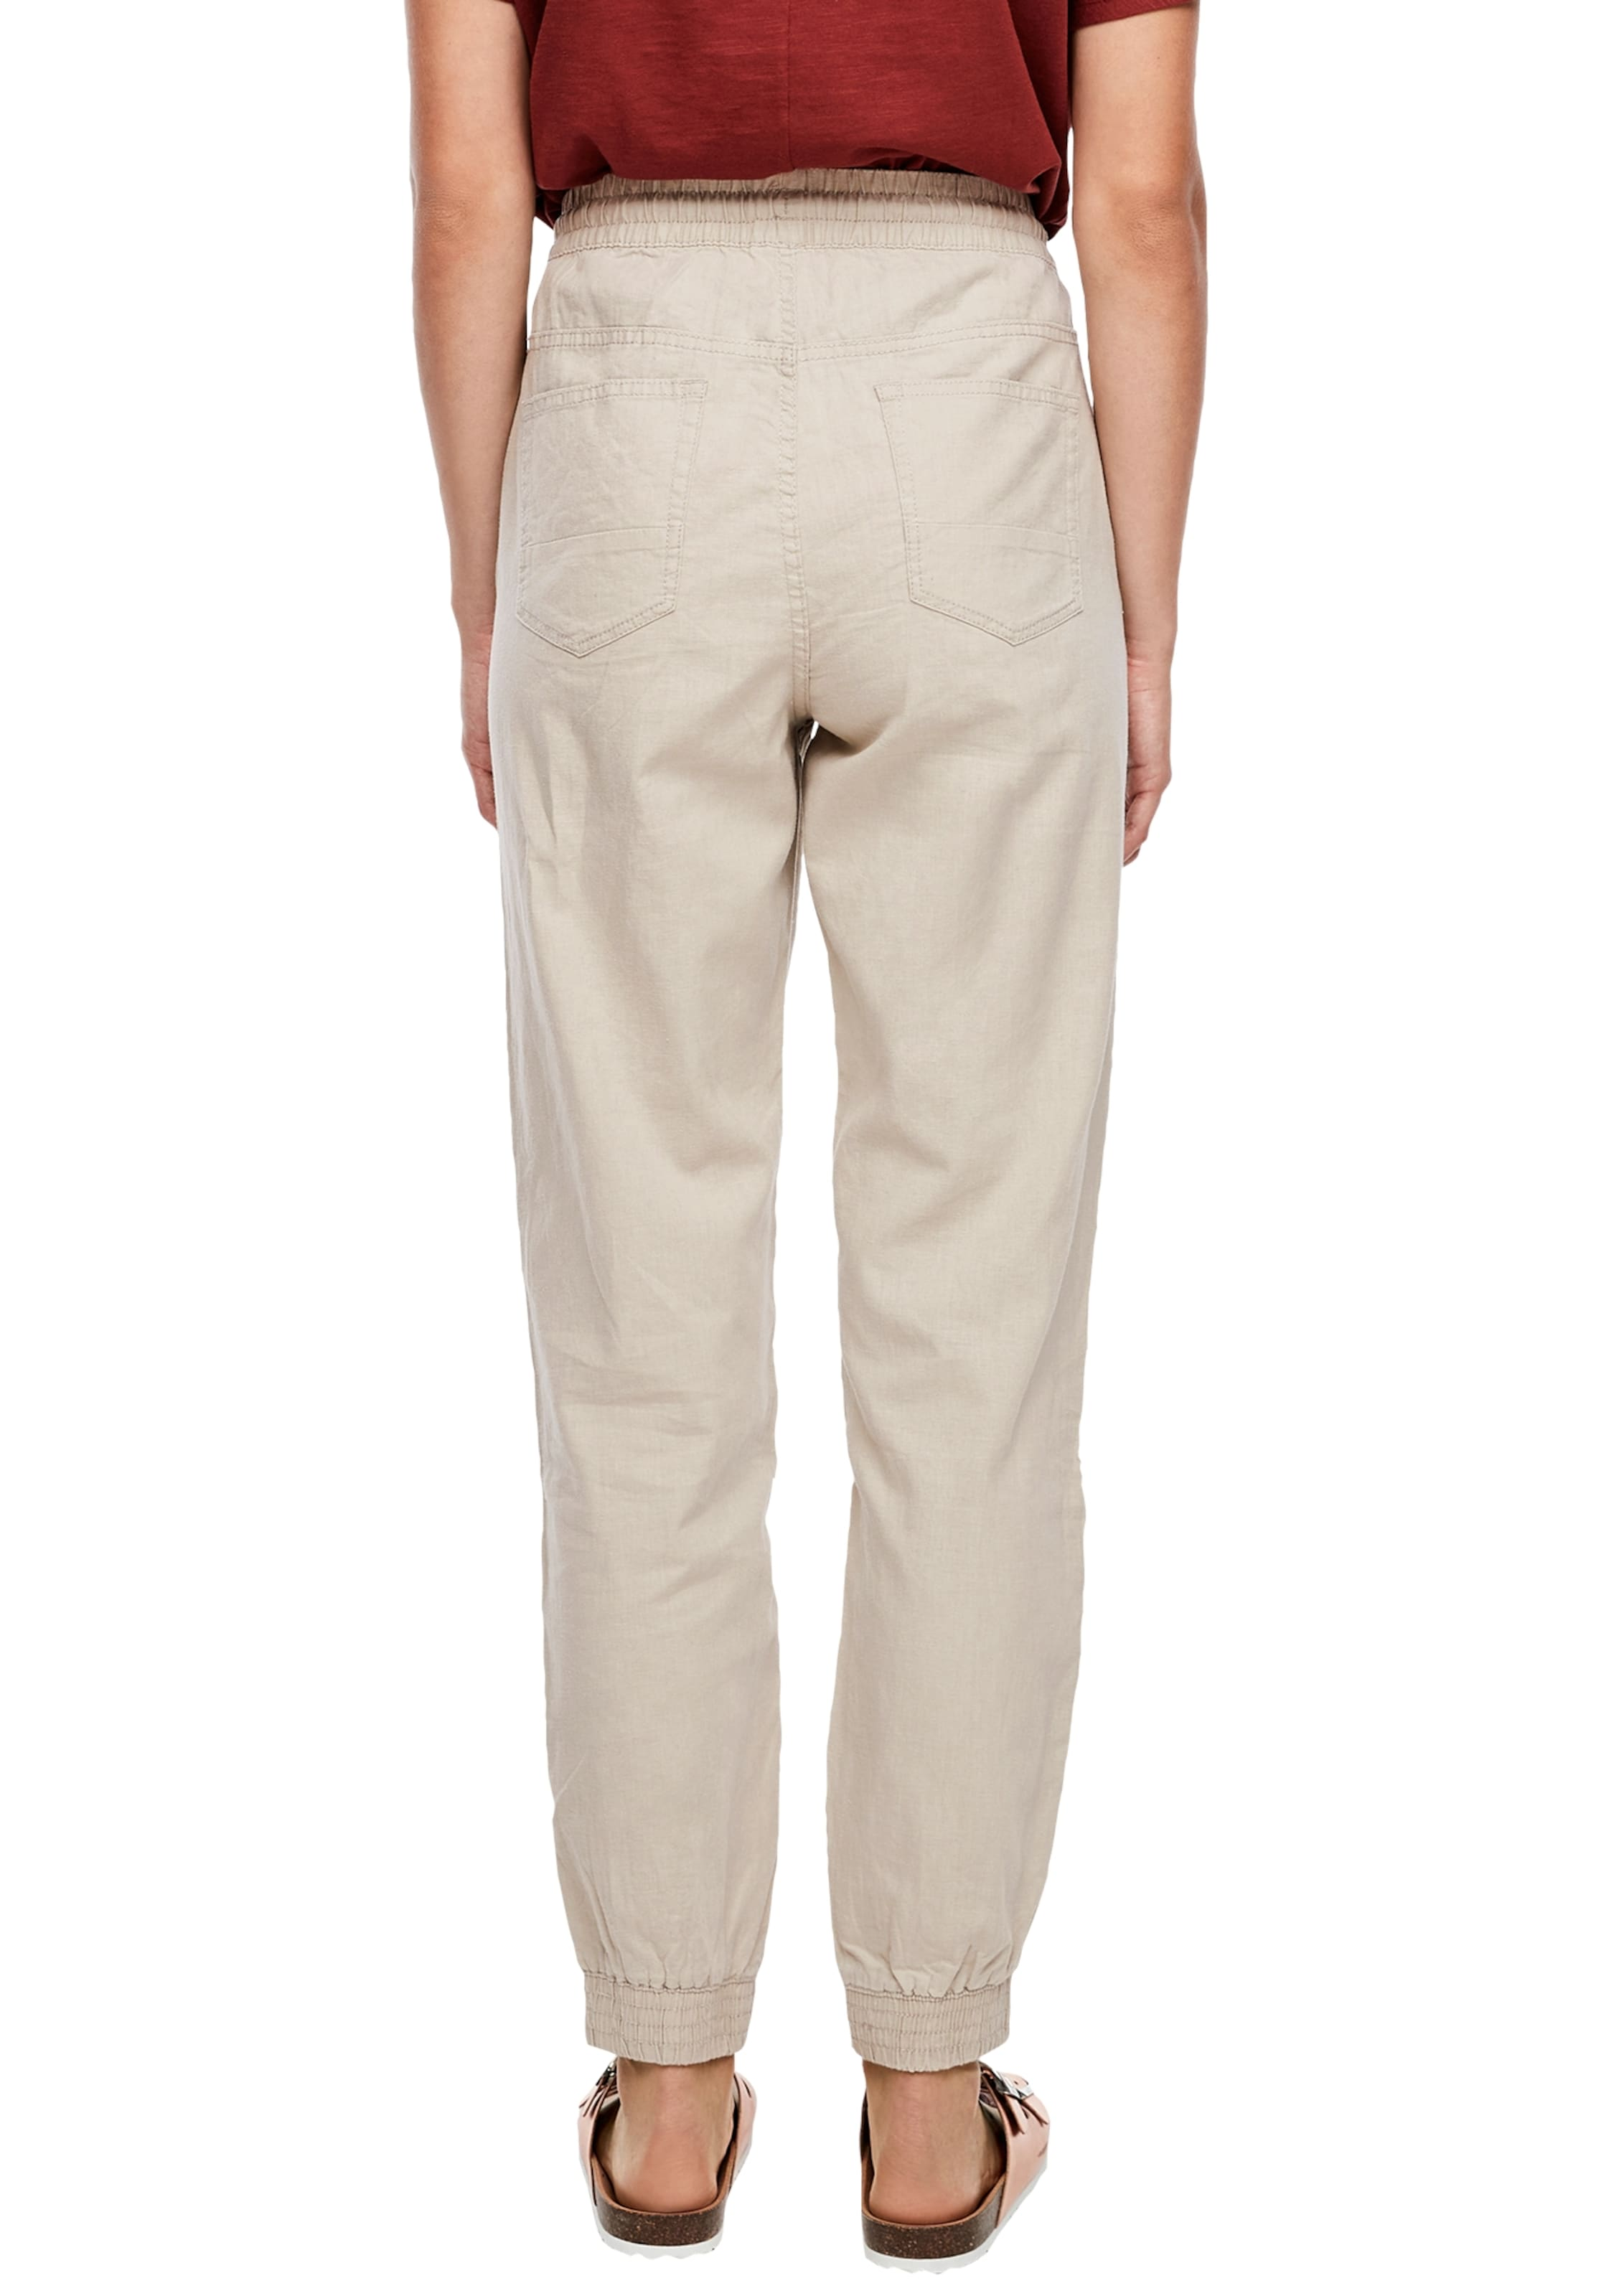 Q/S designed by Hose in beige